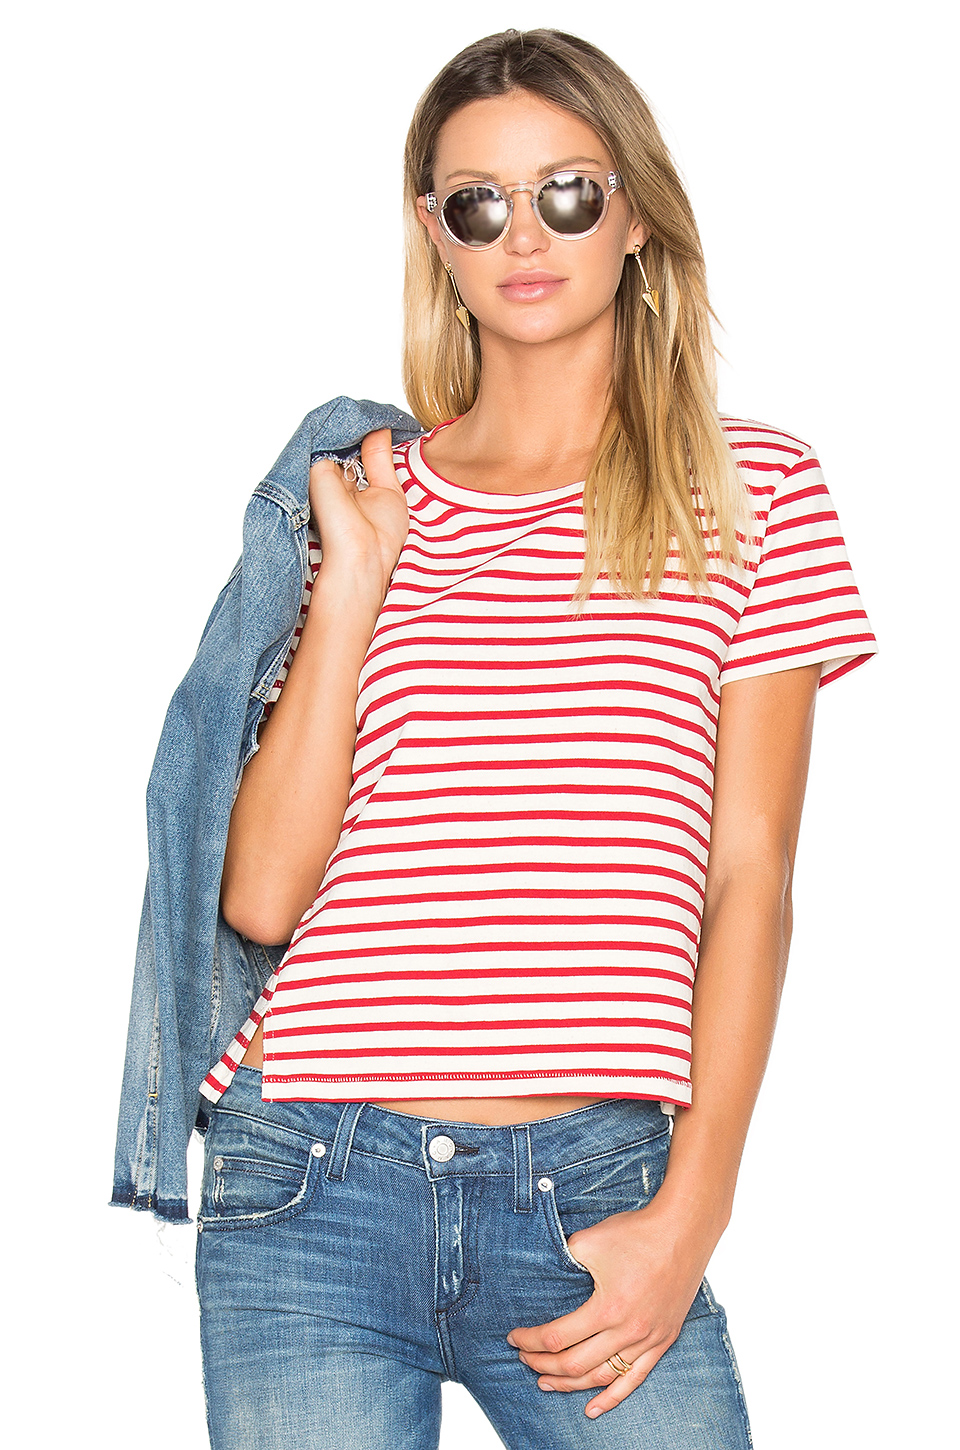 AMO Twist Striped T-Shirt in Red Sailor Stripe